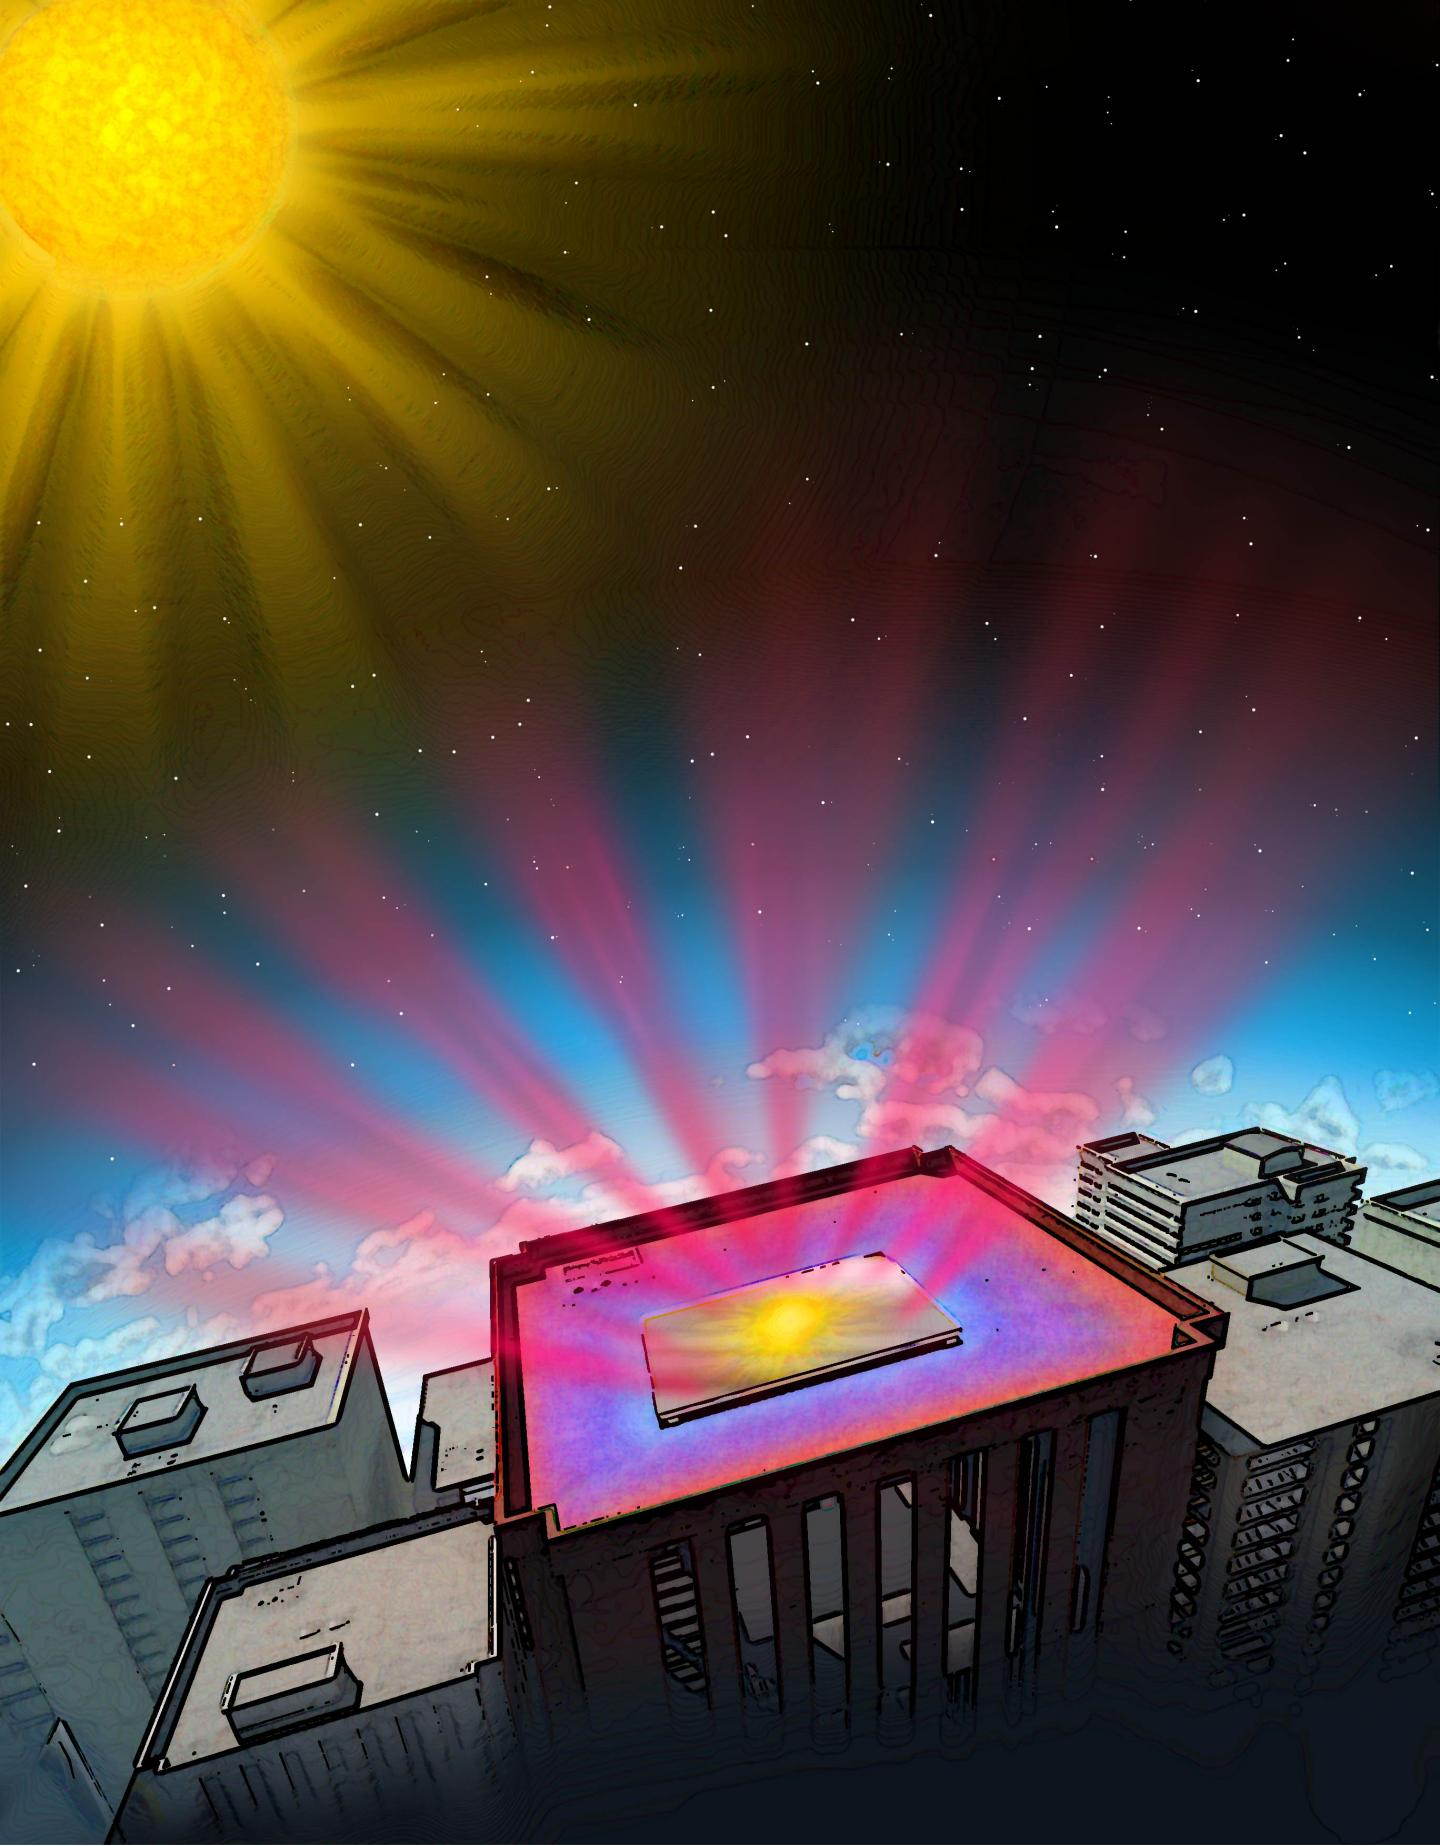 Stanford engineers have invented a transparent material that improves the efficiency of solar cells by radiating thermal energy into space